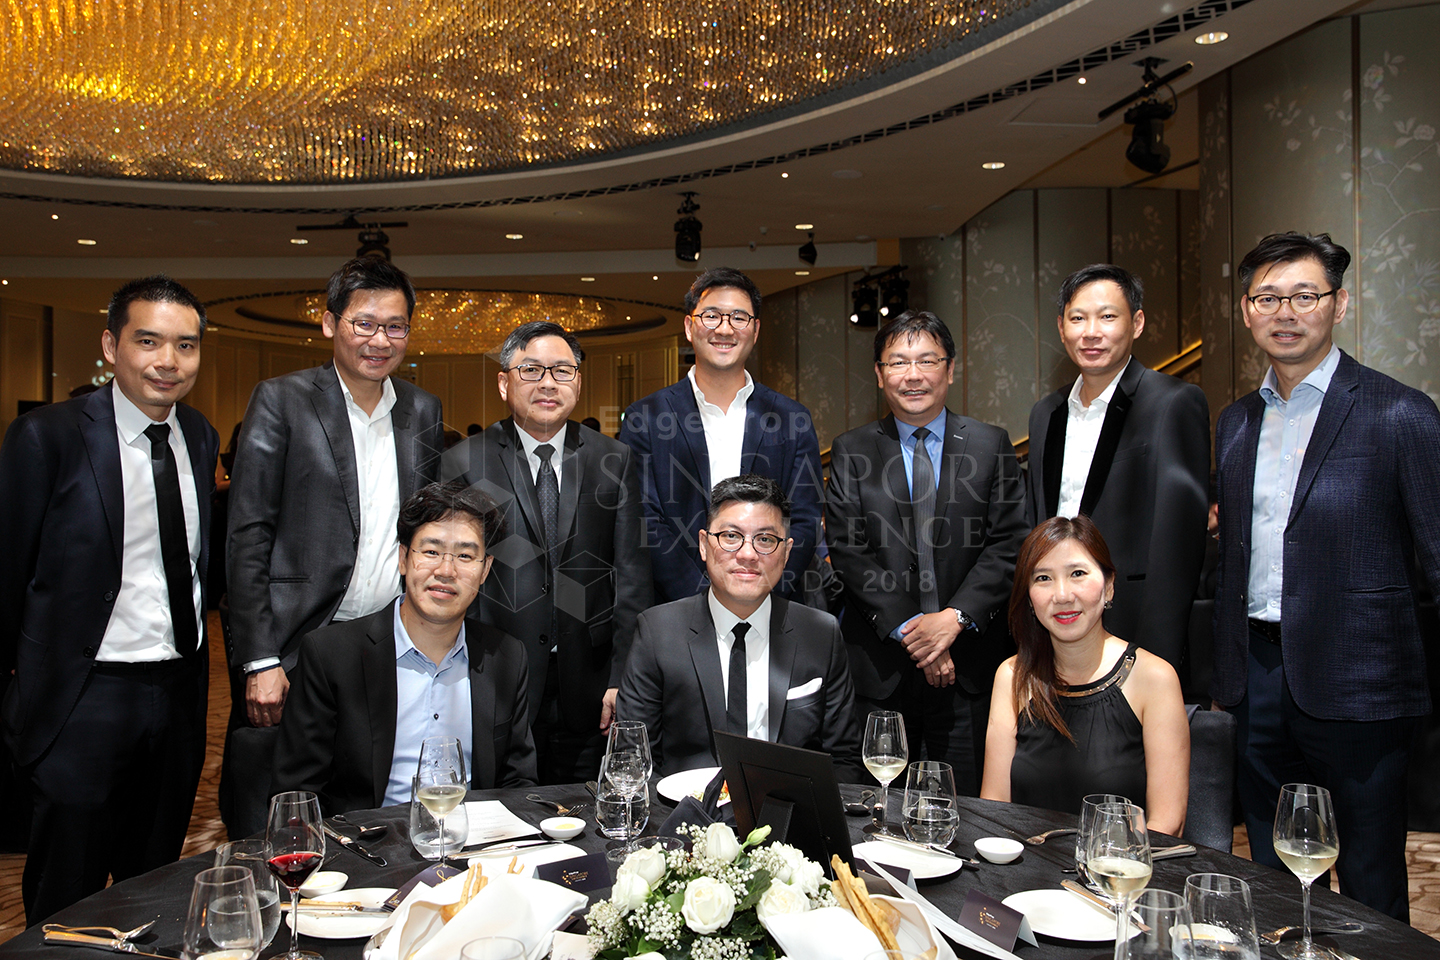 LEI_EDGEPROP_EXCELLENCE_AWARDS_2018_TABLE_09_SIC.jpg